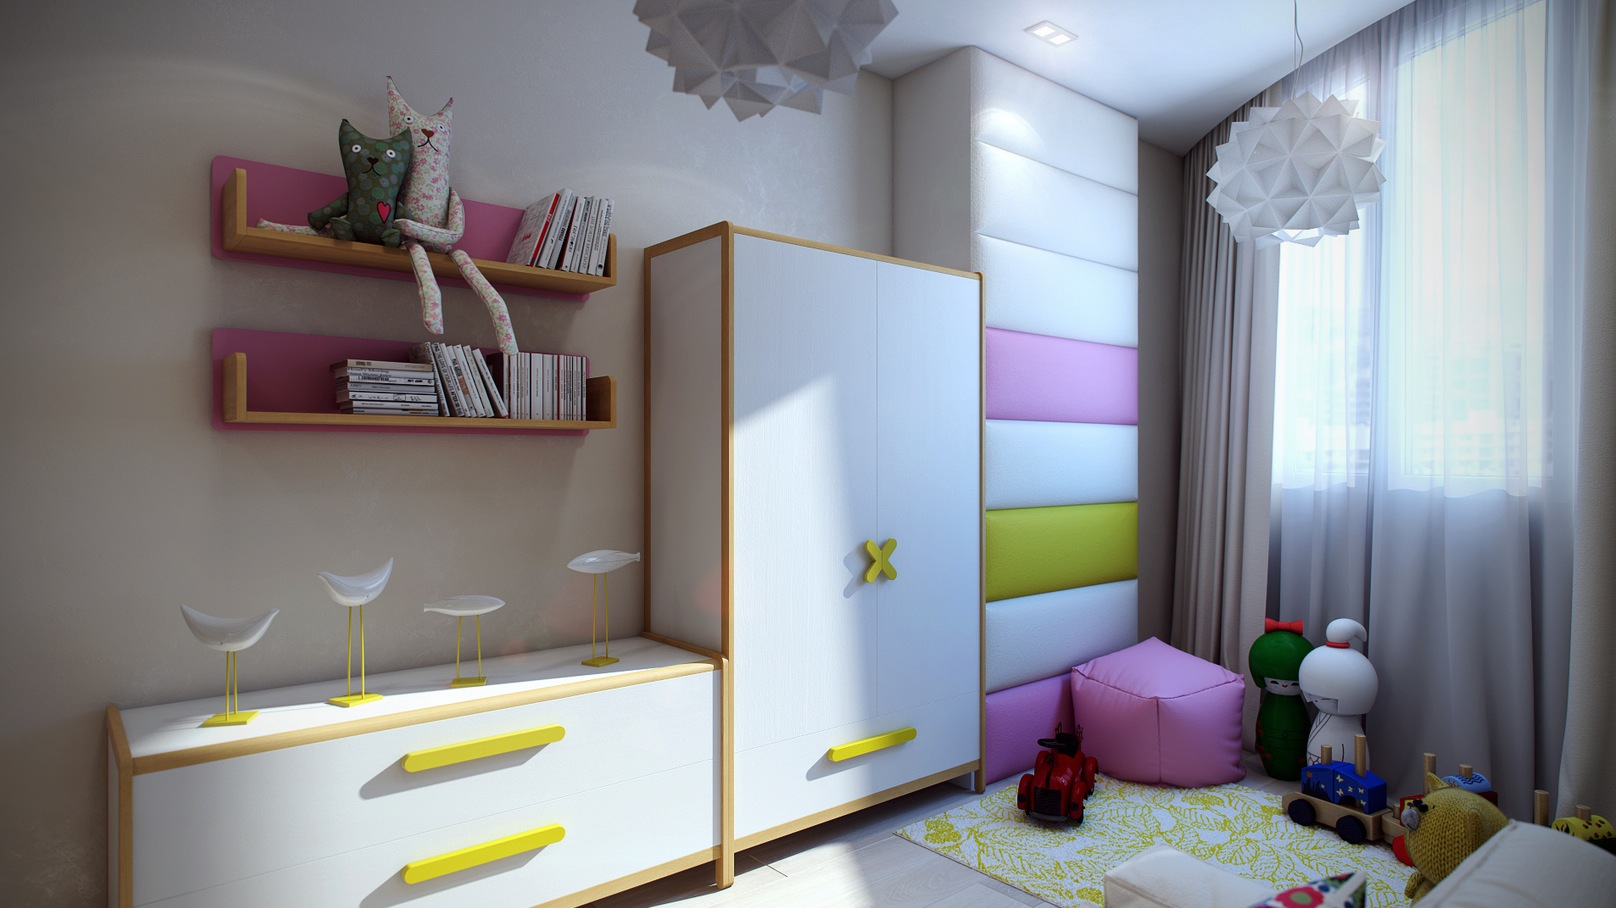 Casting color over kids rooms - Designs of room ...